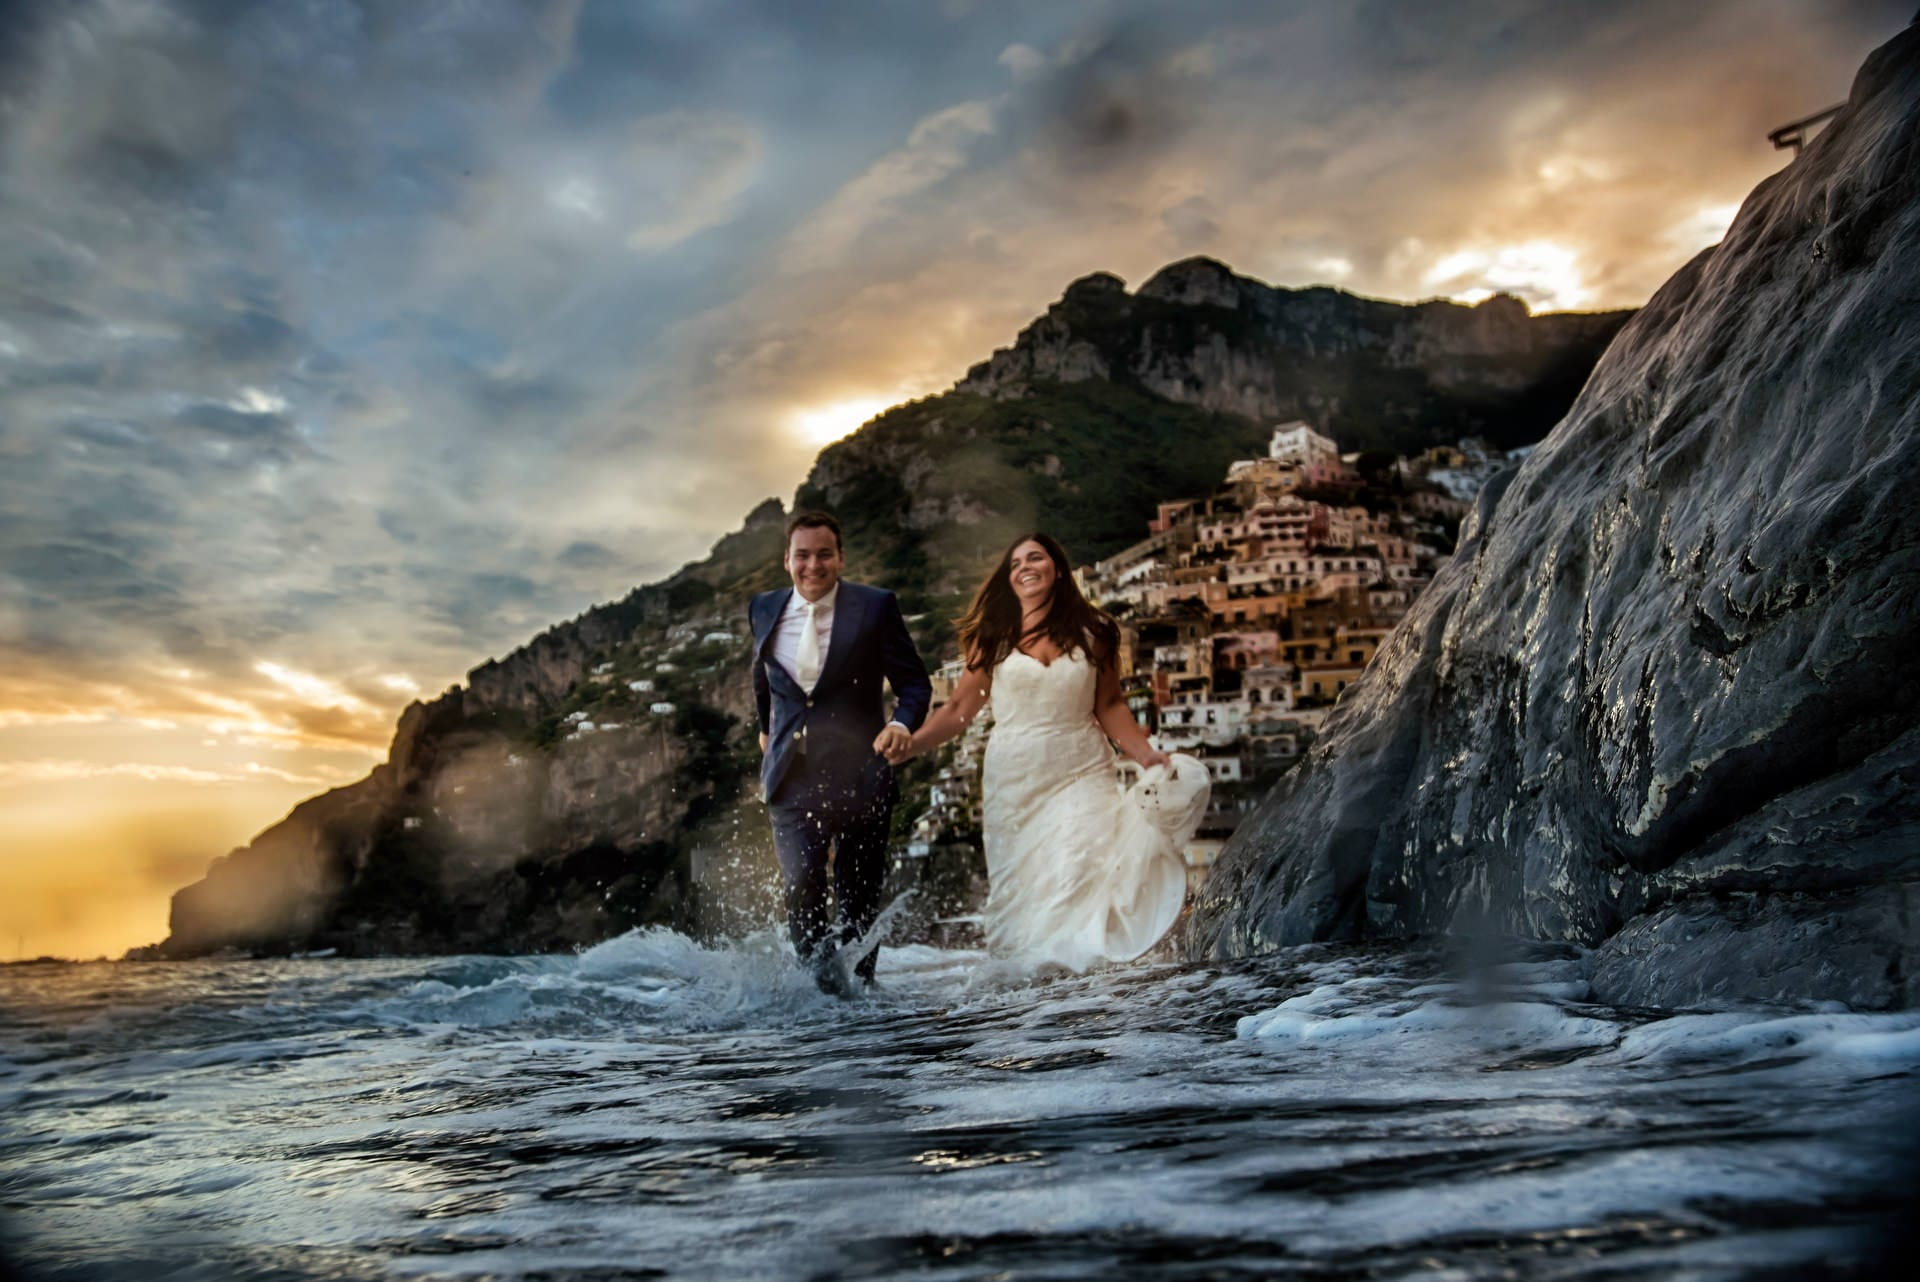 day-after-wedding-shoot-italie-almalfi-coast-11